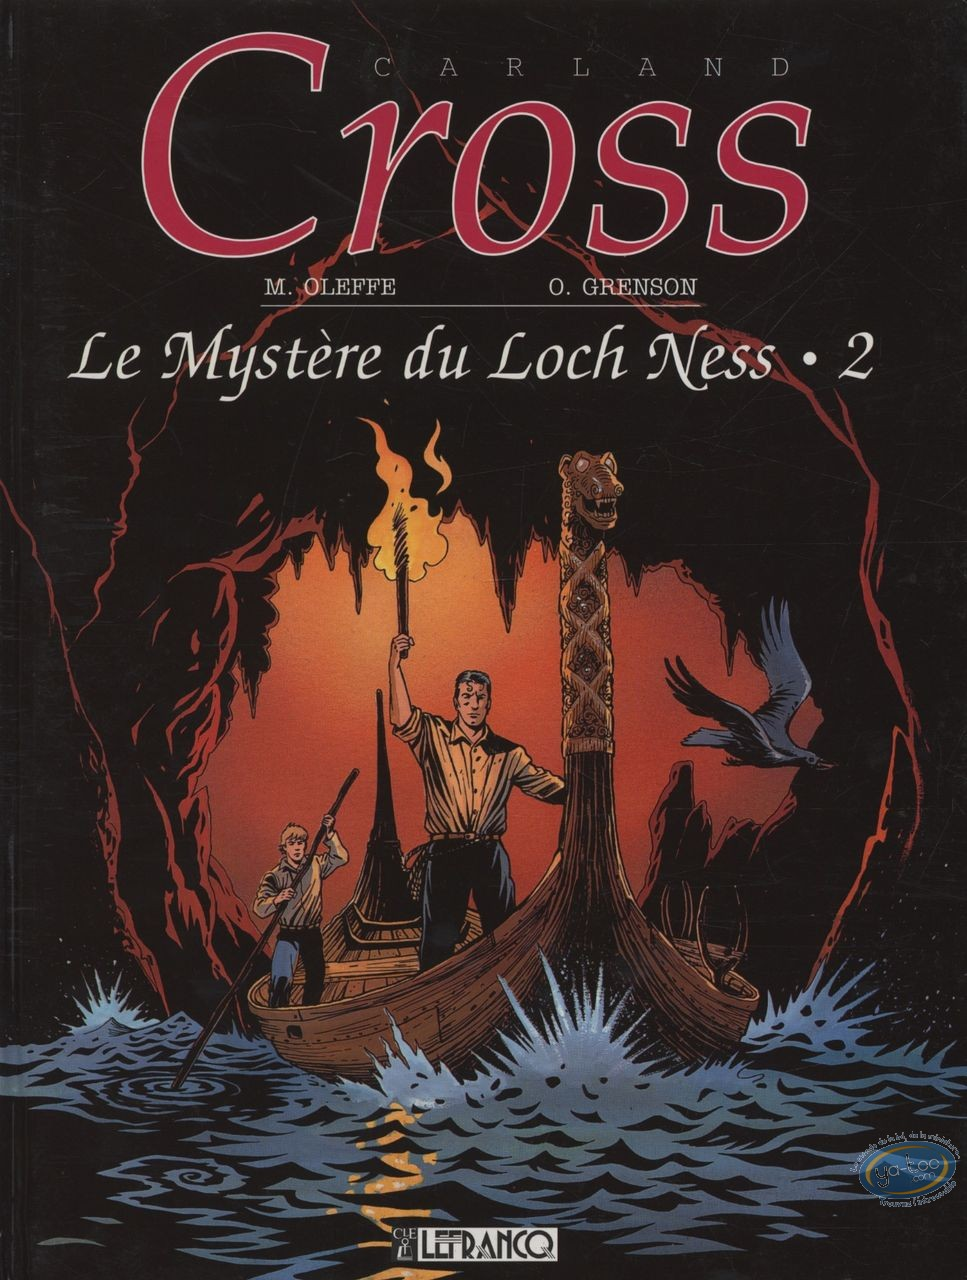 Used European Comic Books, Carland Cross : Le Mystère du Loch Ness 2